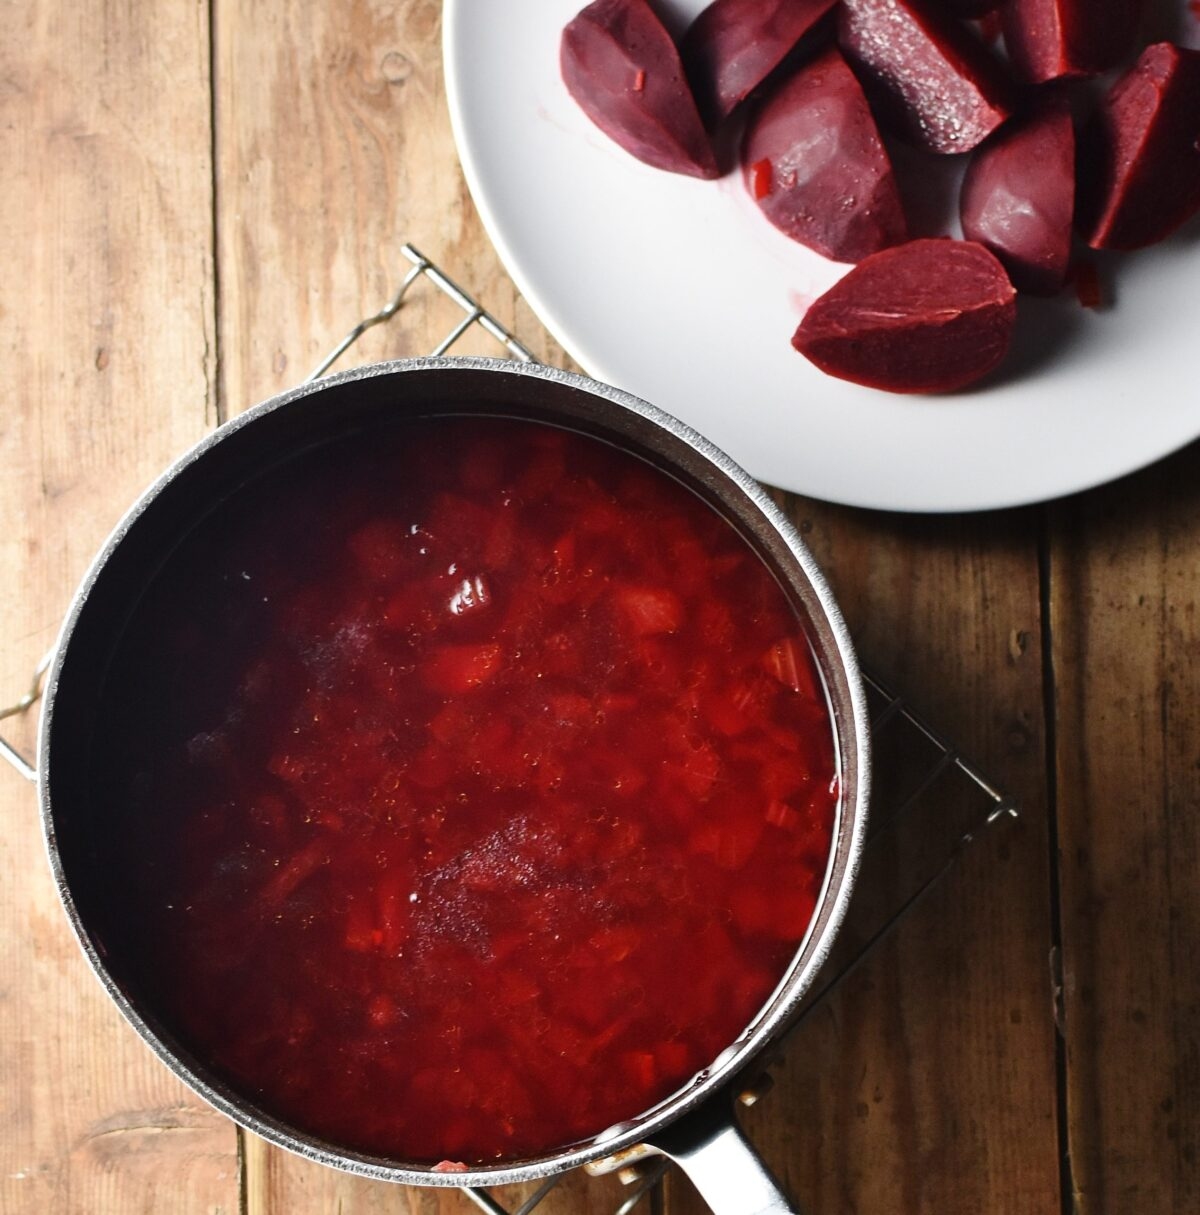 Borscht soup in large pot and quartered beets on white plate in top right corner.